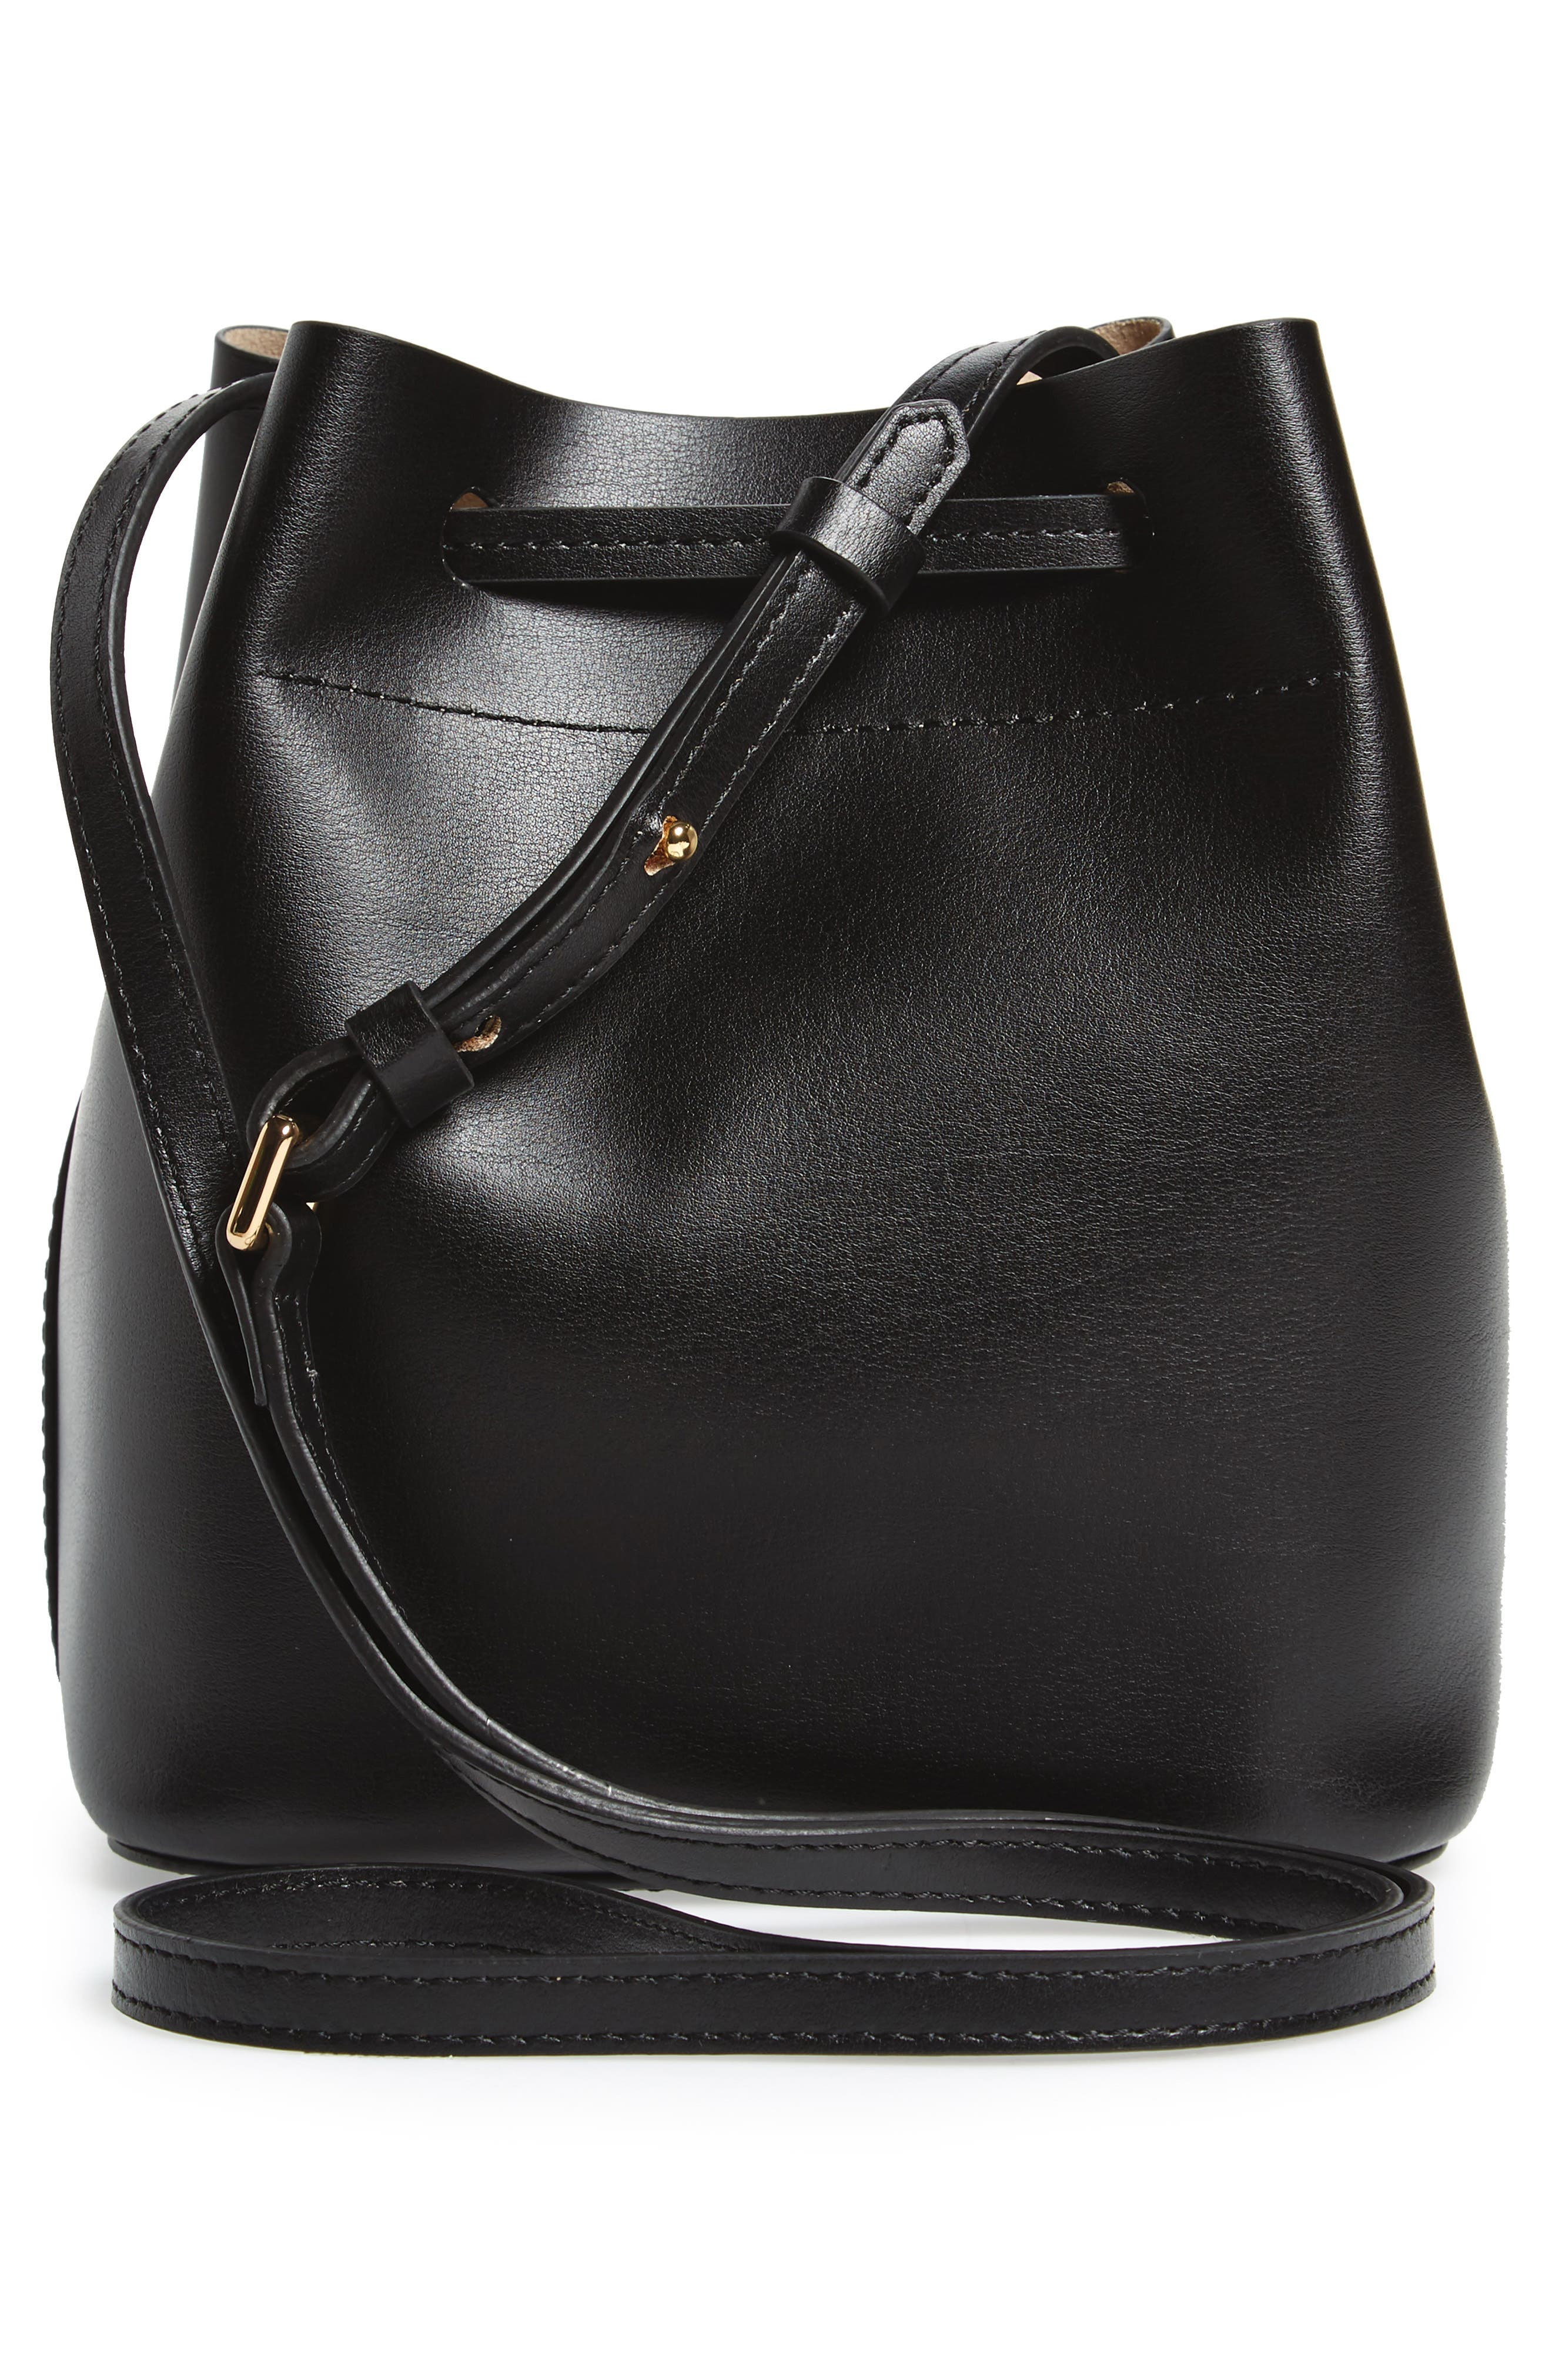 LODIS Small Silicon Valley Blake RFID Leather Bucket Bag,                             Alternate thumbnail 3, color,                             Black/ Taupe